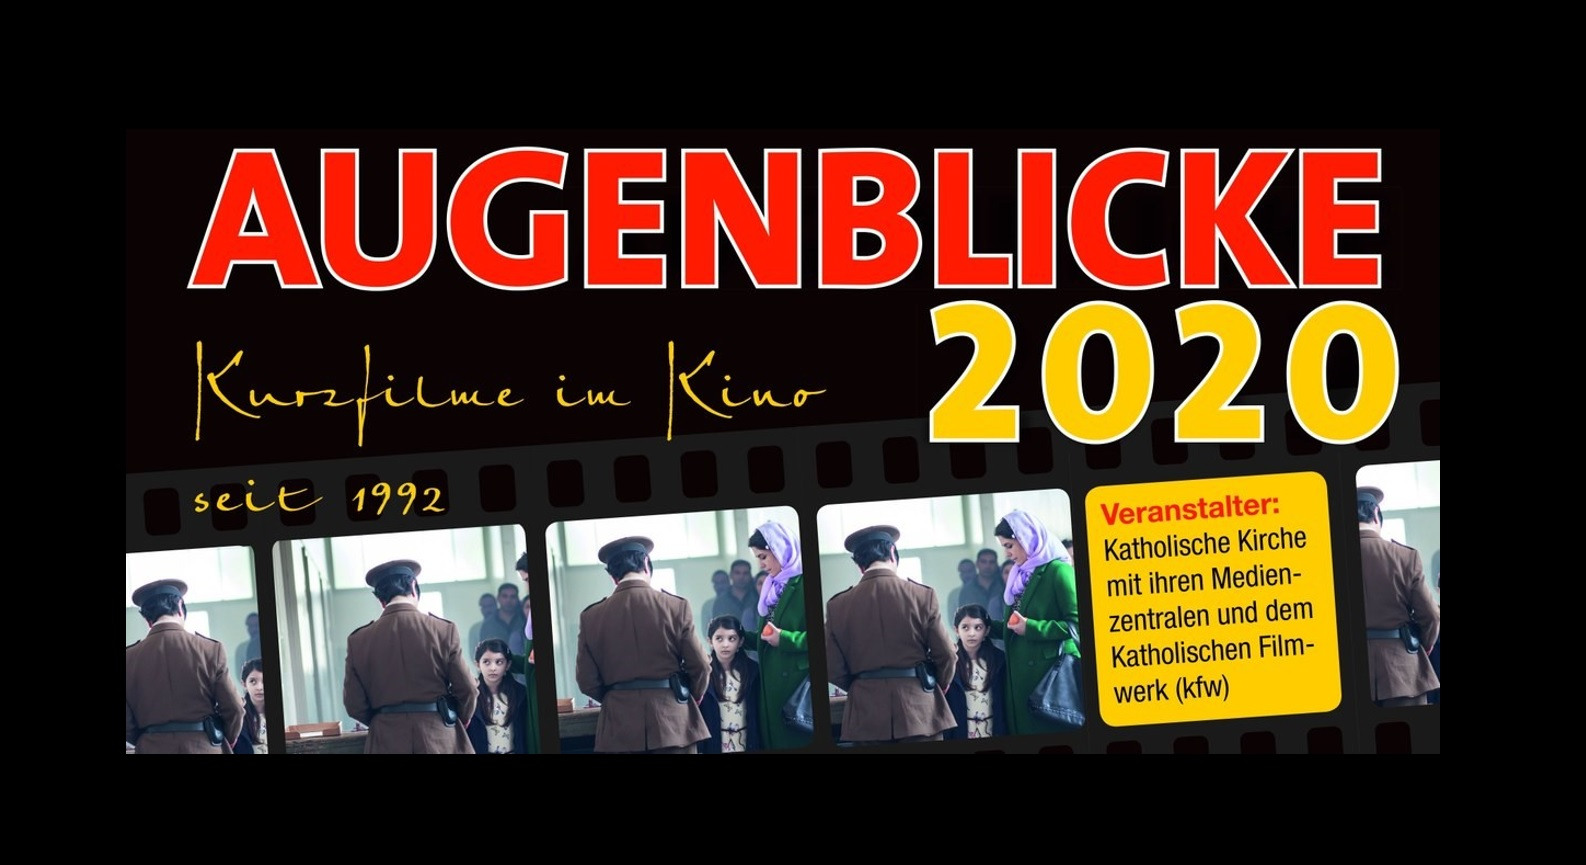 2020 News augenblicke2